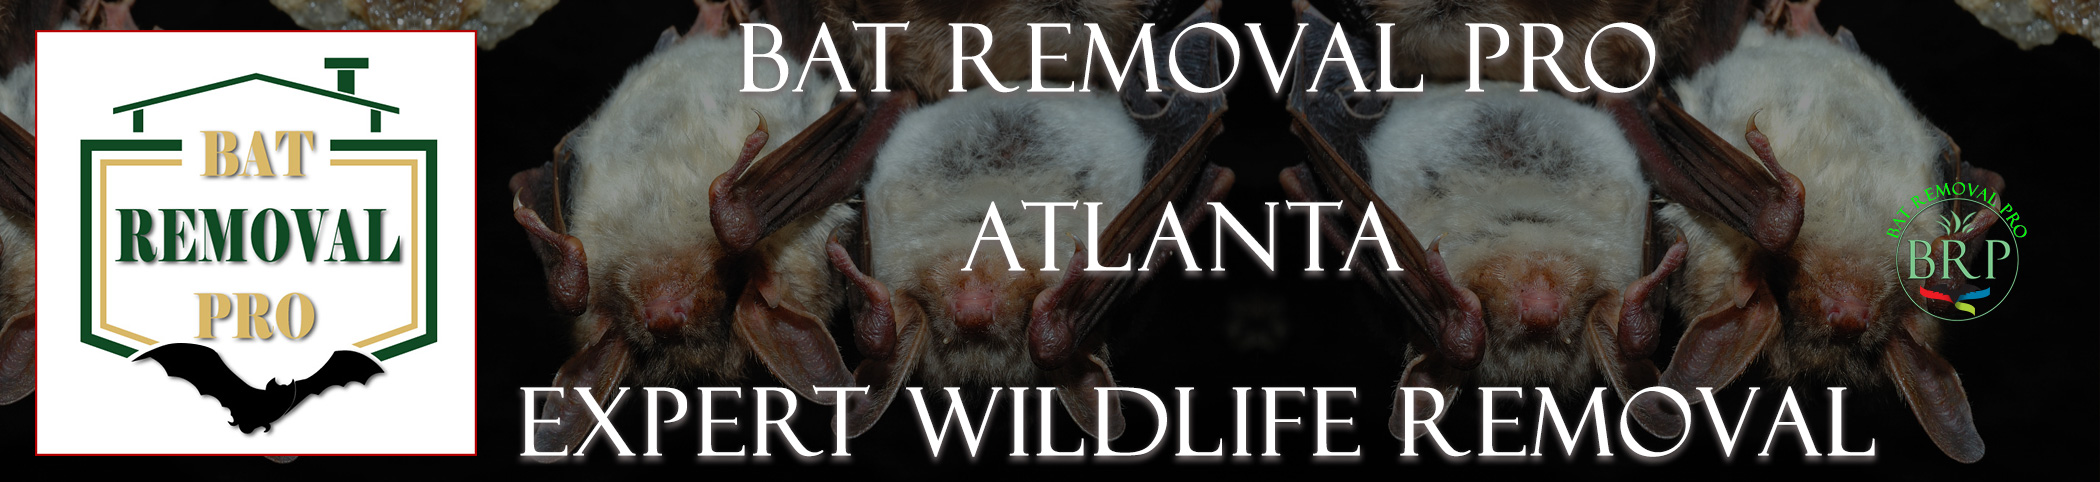 Atlanta-bat-removal-at-bat-removal-pro-header-image